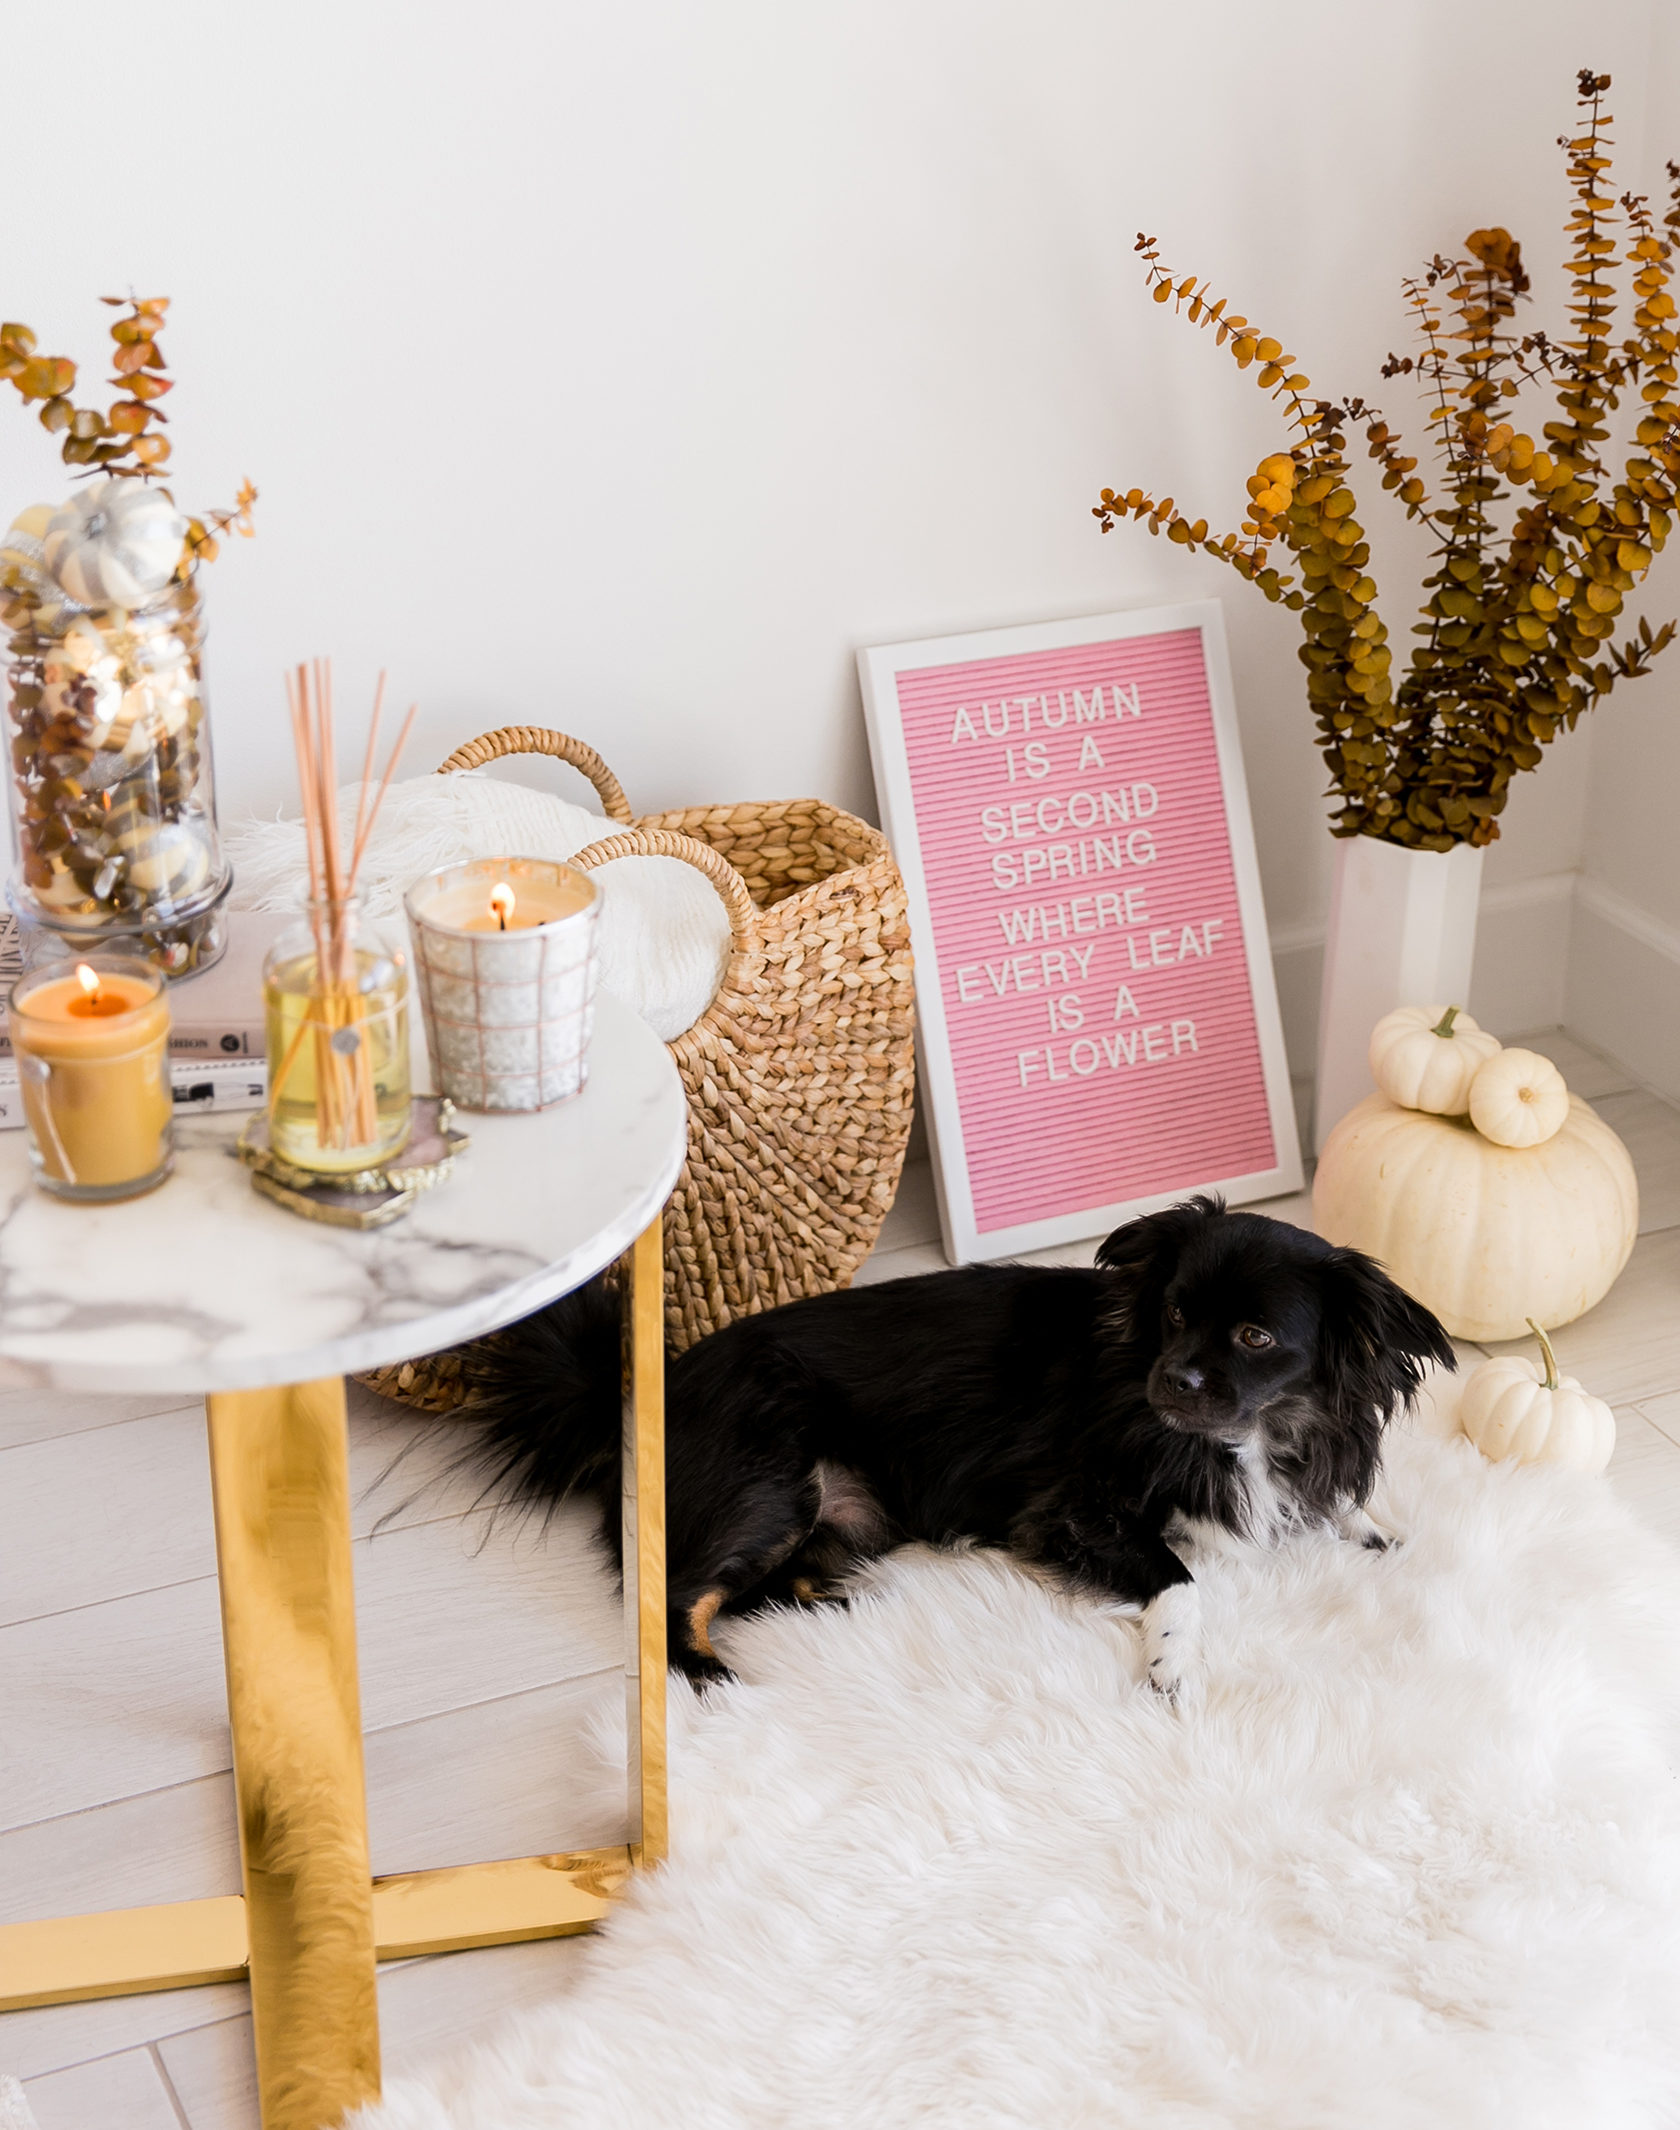 Sydne Style shows chic fall home decor ideas with eucalyptus arrangement